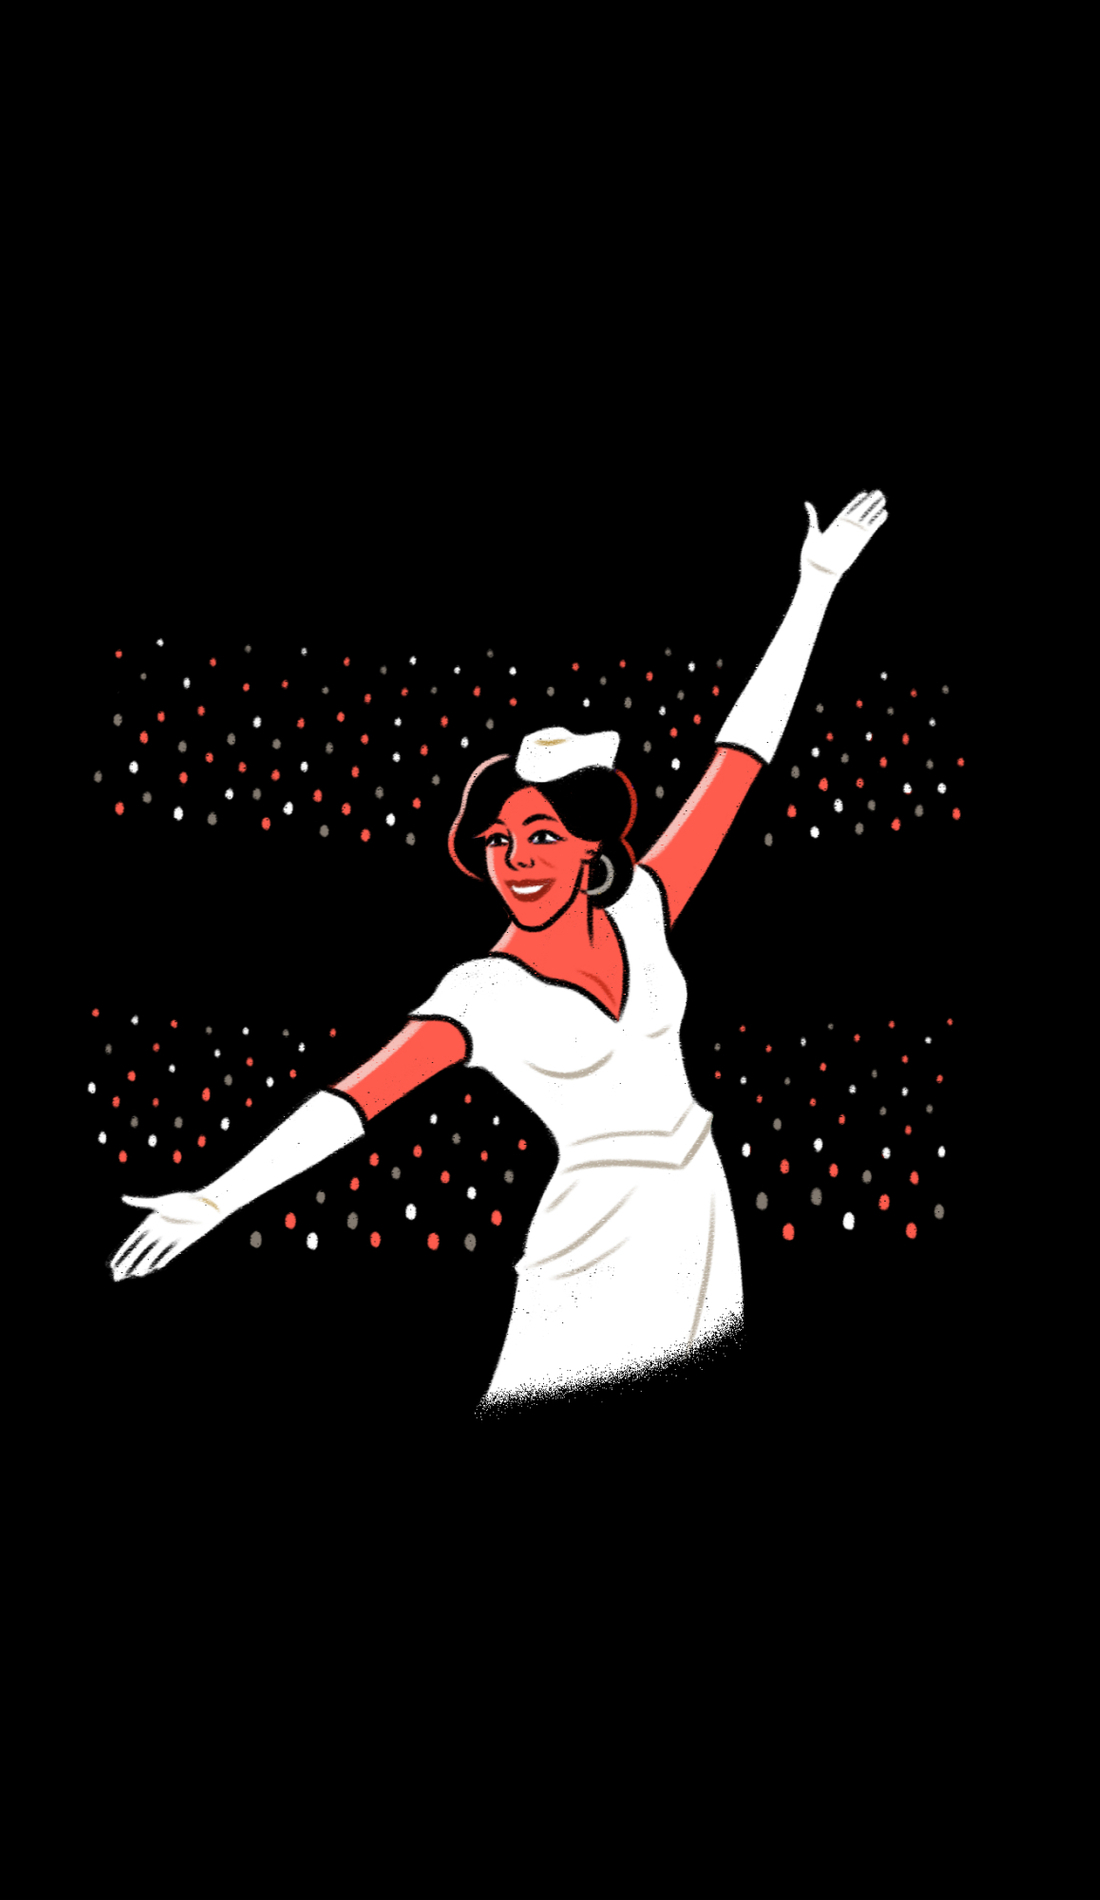 A Porgy and Bess live event